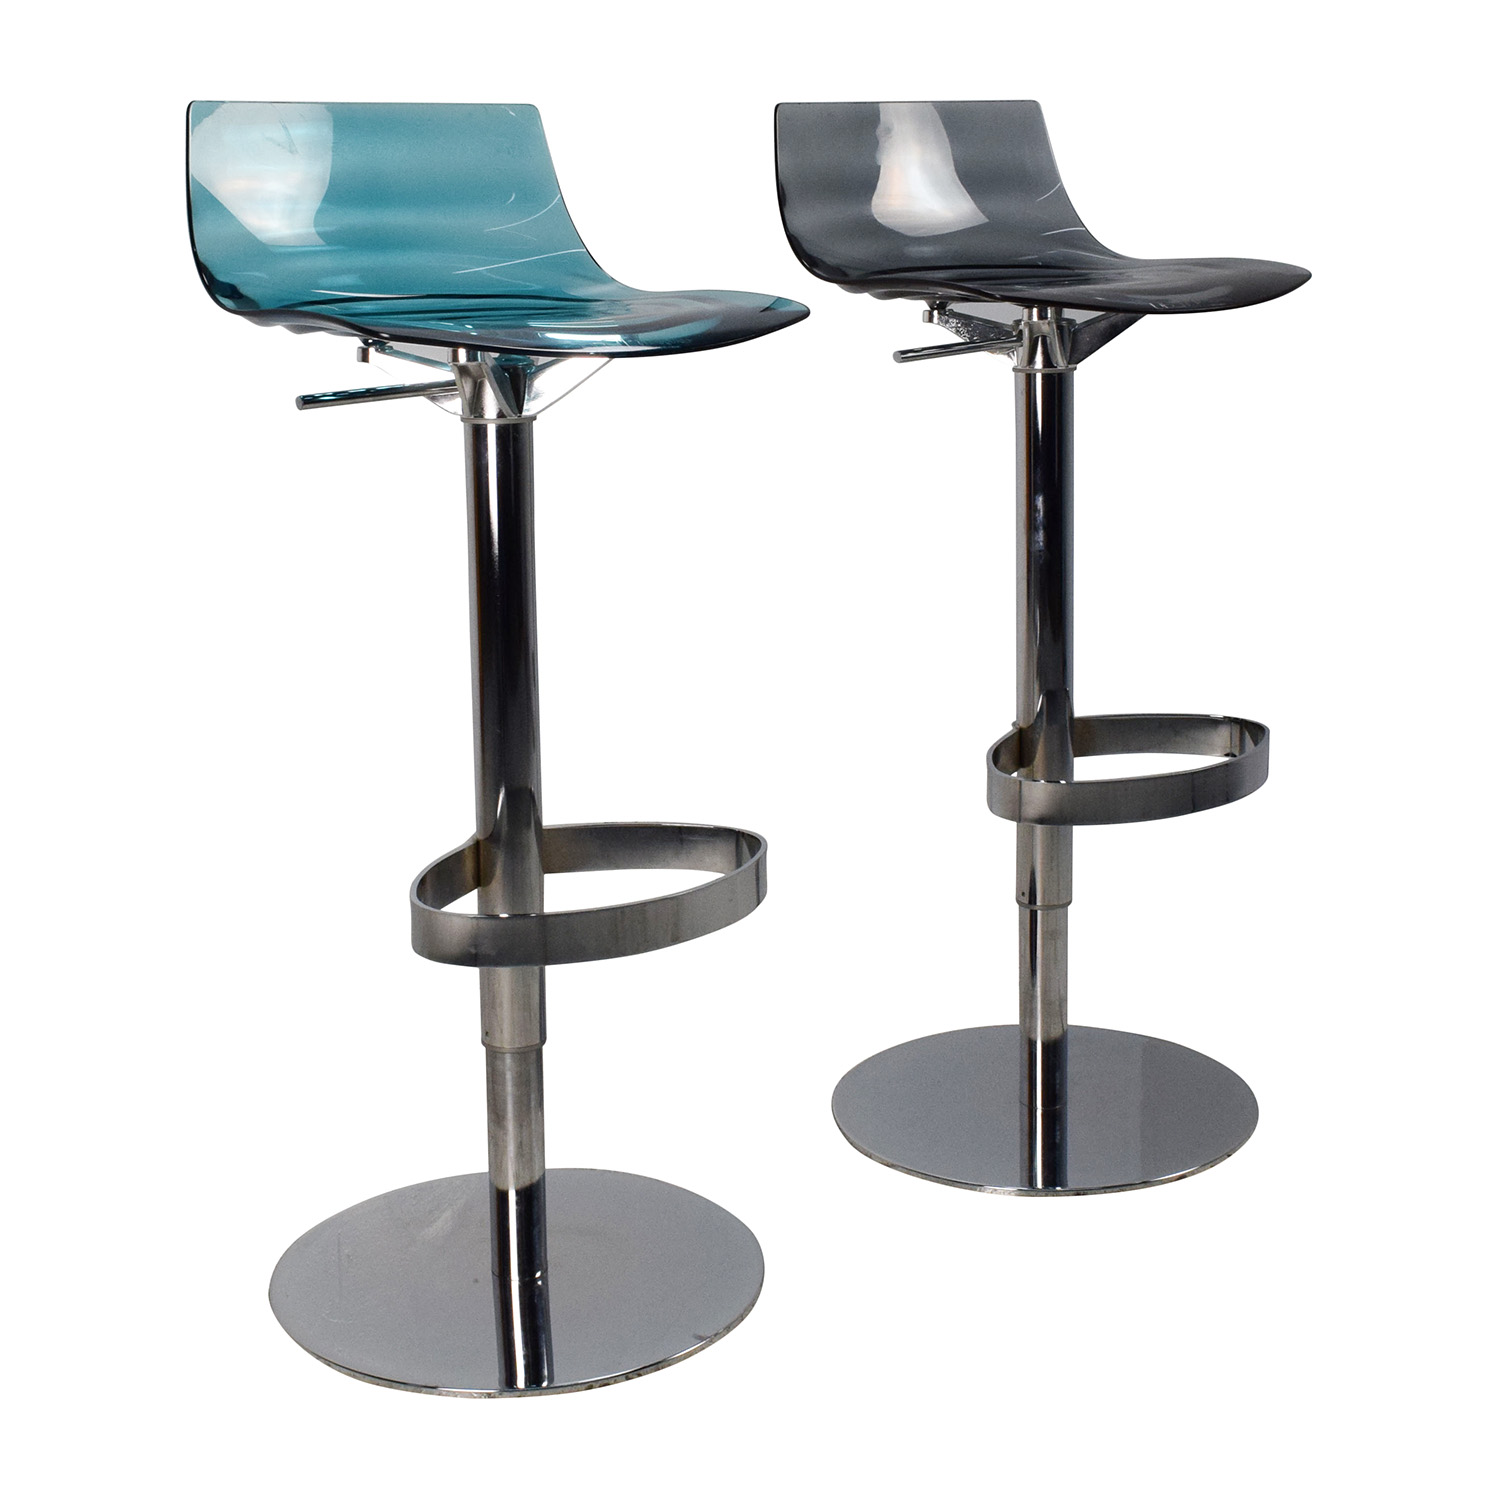 Bar Stools Chairs 87 Off Calligaris Calligaris L 39eau Adjustable Swivel